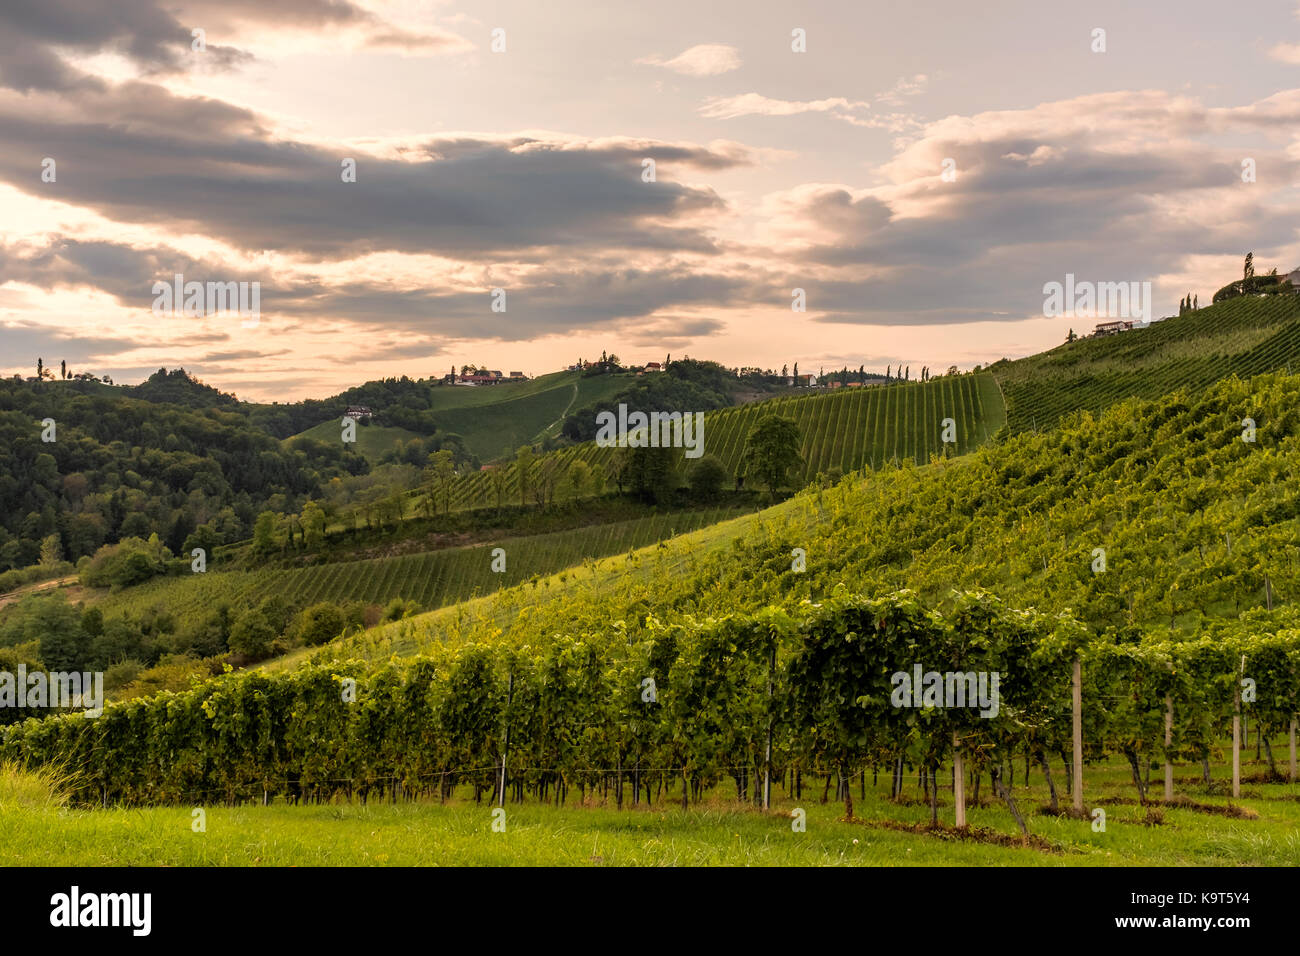 Vineyard in the evening along the south Styrian vine route in Austria, Europe - Stock Image